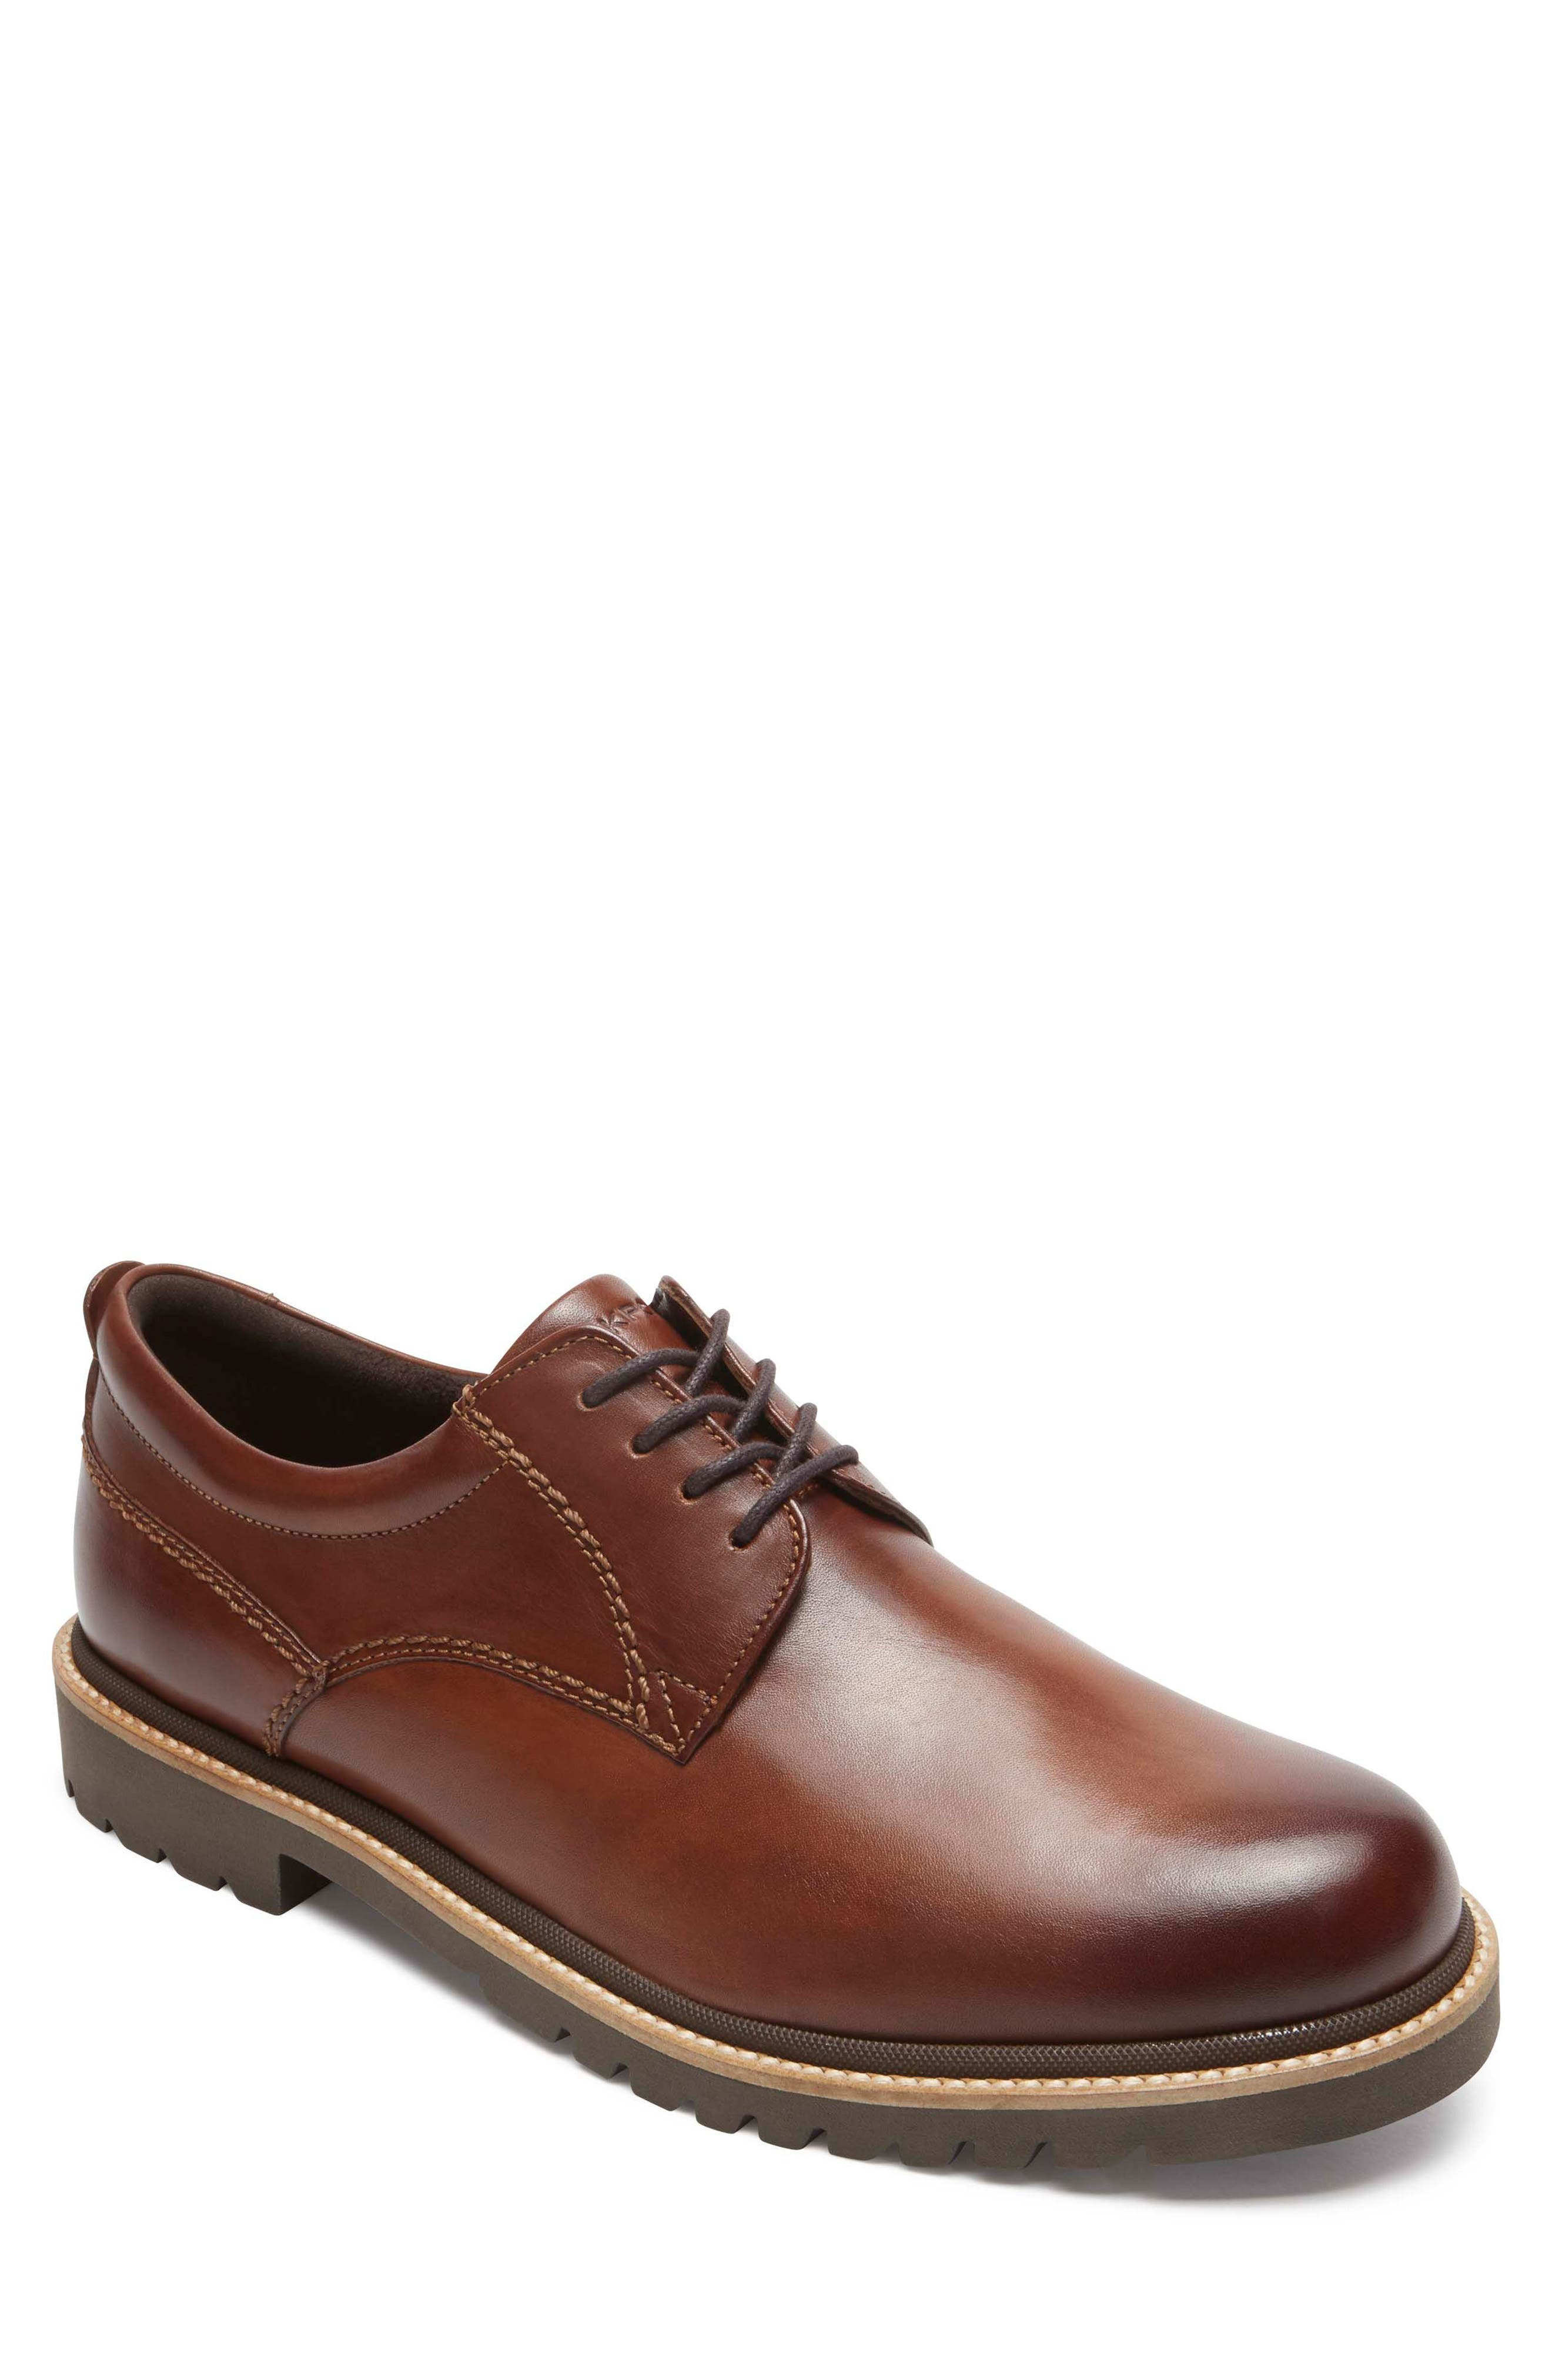 Marshall Buck Shoe,                             Main thumbnail 1, color,                             Dark Brown Leather